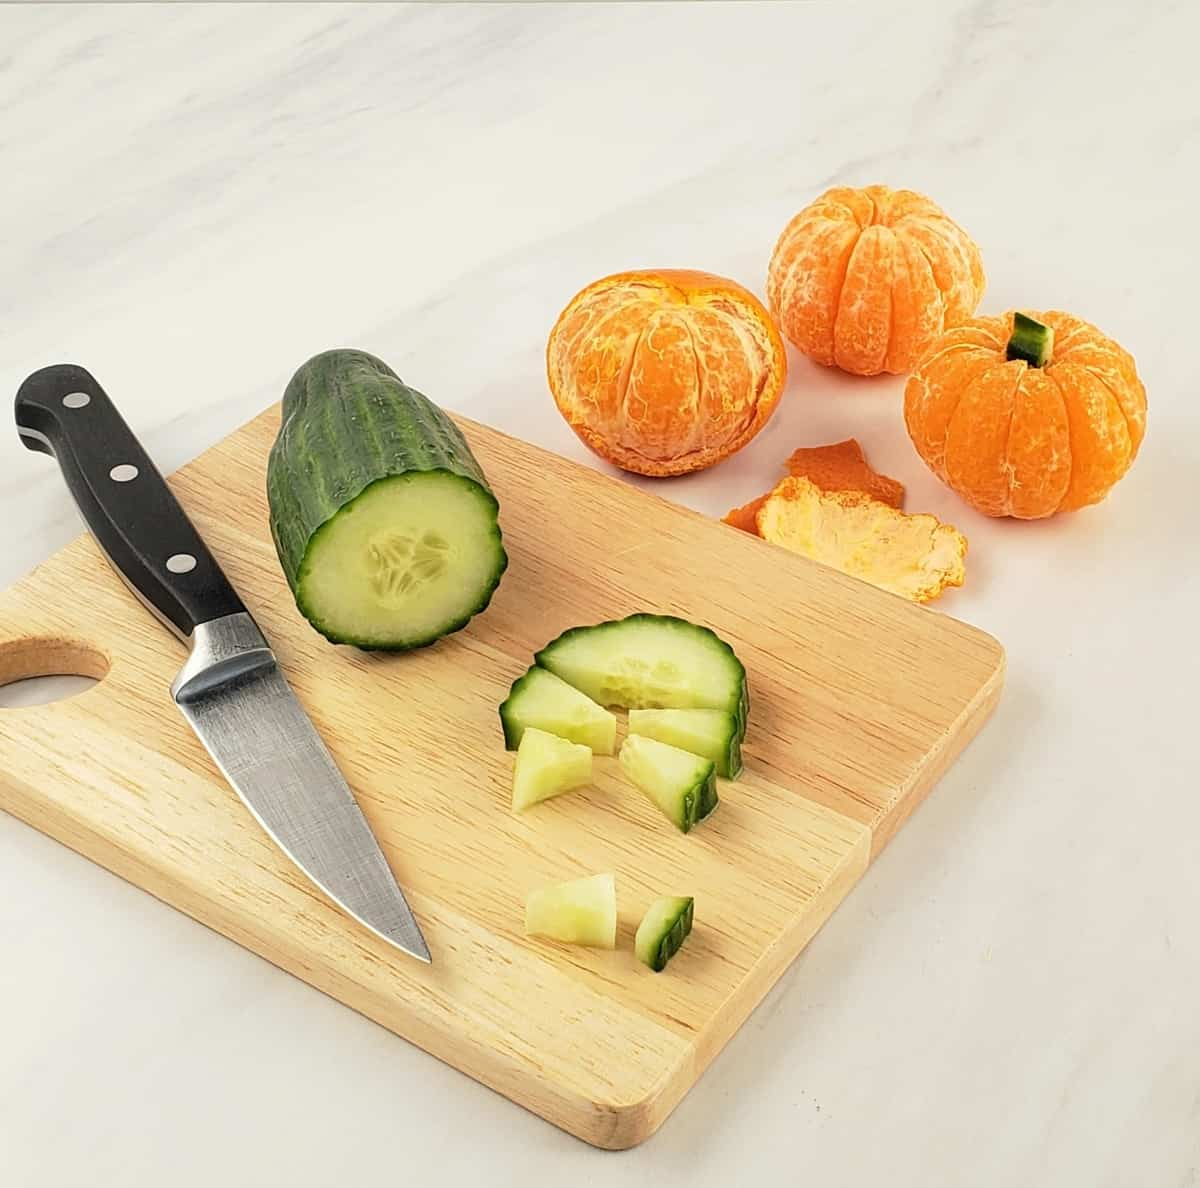 Mandarin oranges; some peeled. knife and sliced cucumber on wooden cutting board